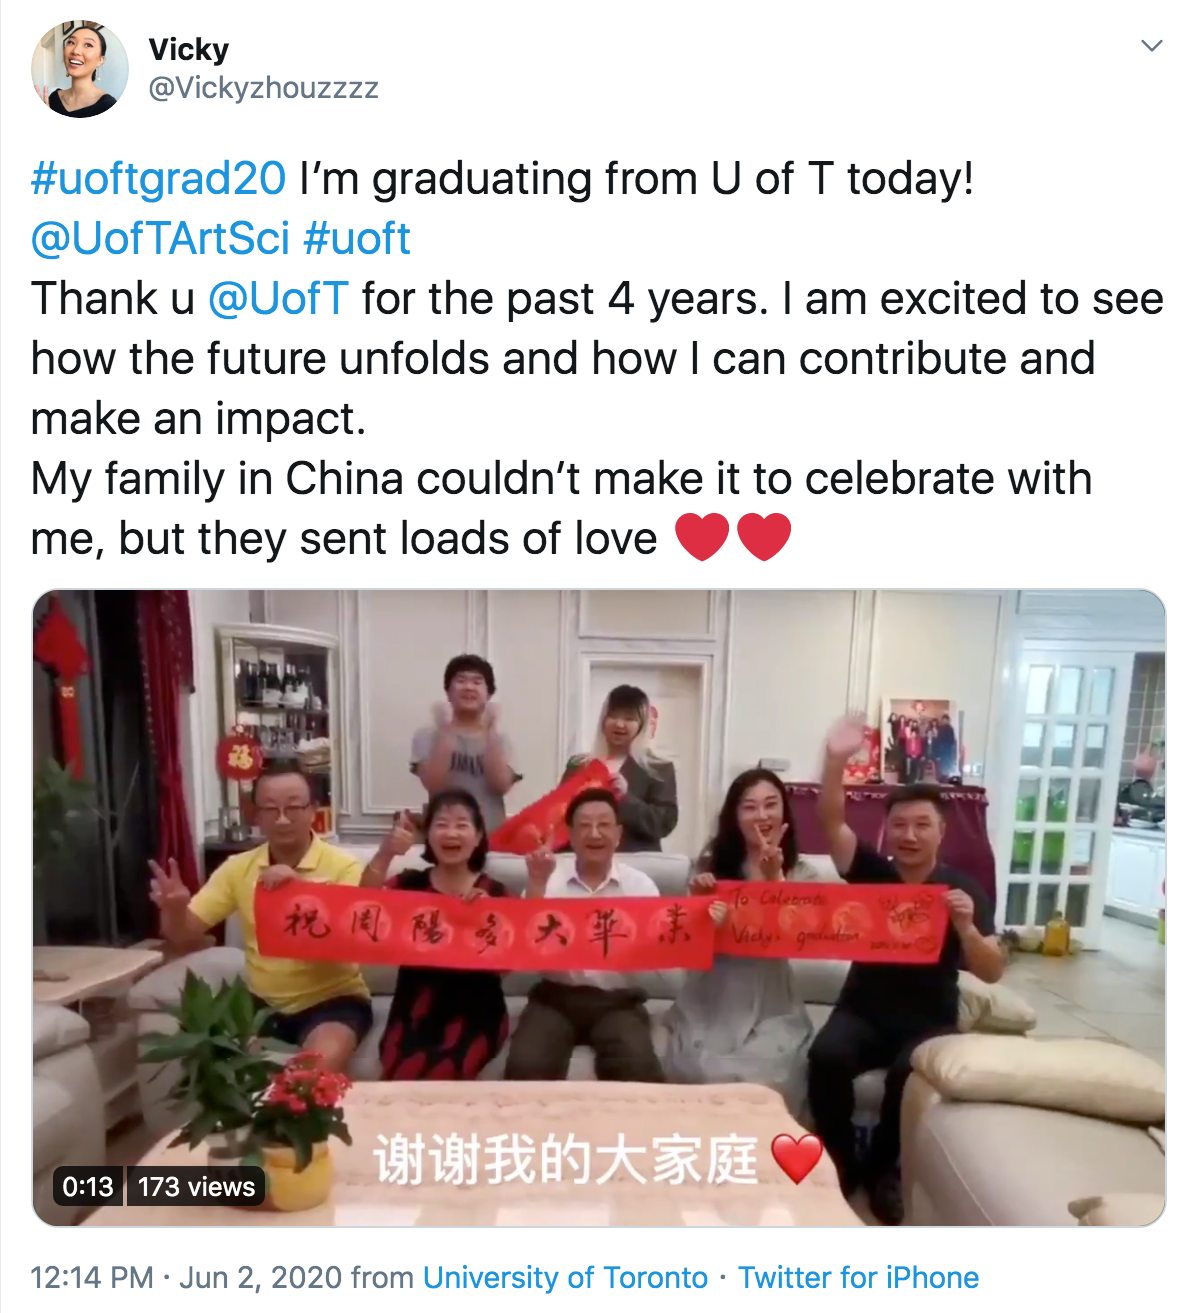 Vicky twitter post of the video her family made to celebrate virtually on her convocation day